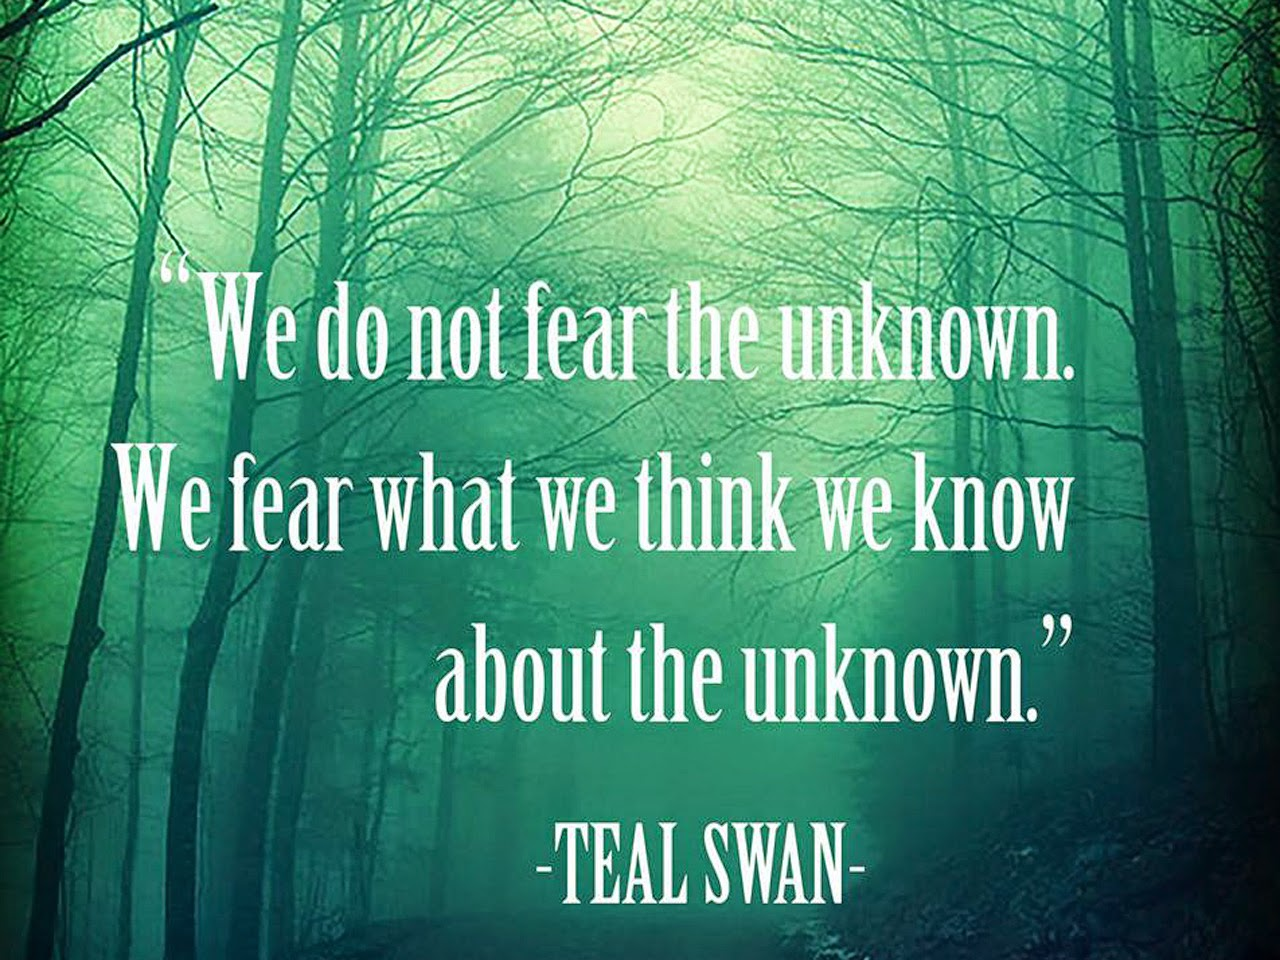 Quotes And Sayings: Fear And Frightening Quotes And Sayings